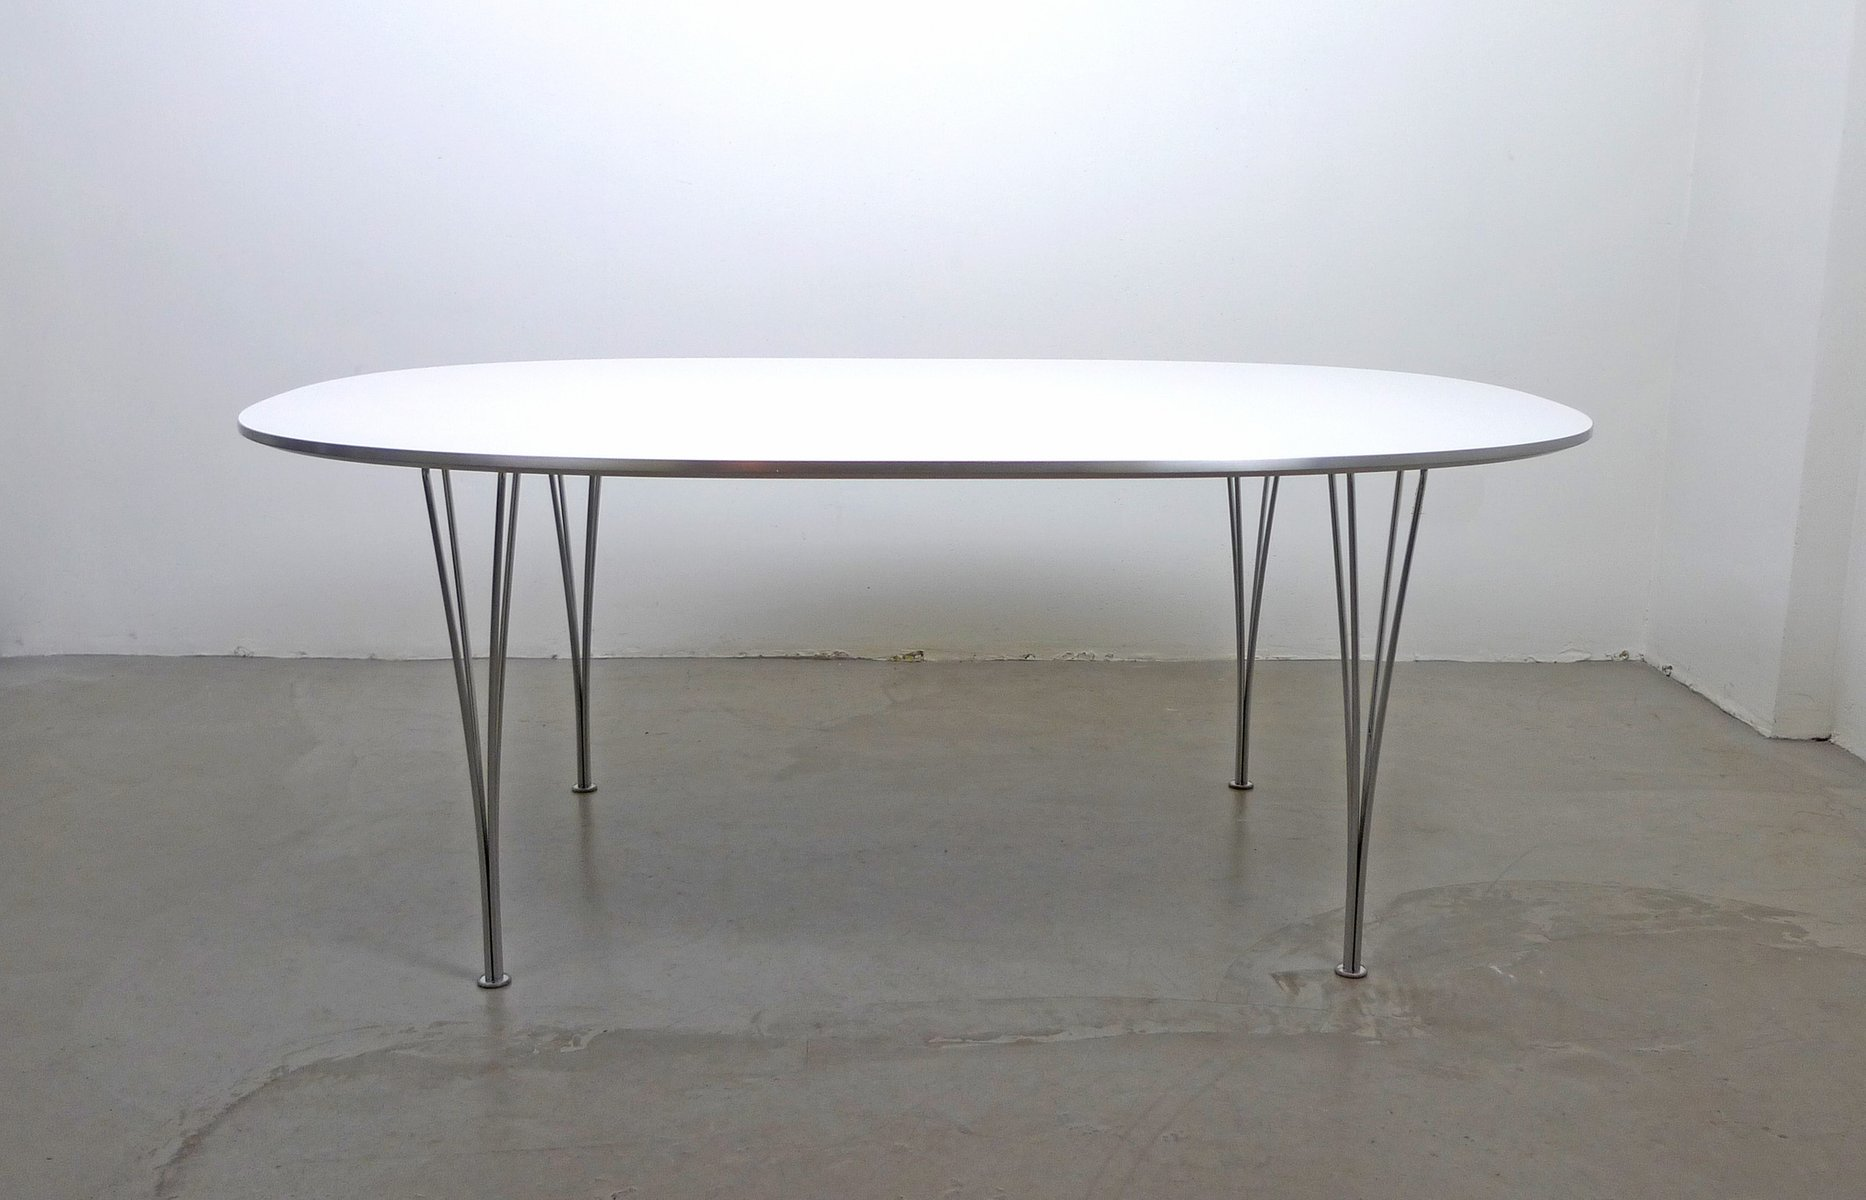 Scandinavian Modern Elliptical Table By Piet Hein, Bruno Mathsson And Arne  Jacobsen For Fritz Hansen, 1968 For Sale At Pamono